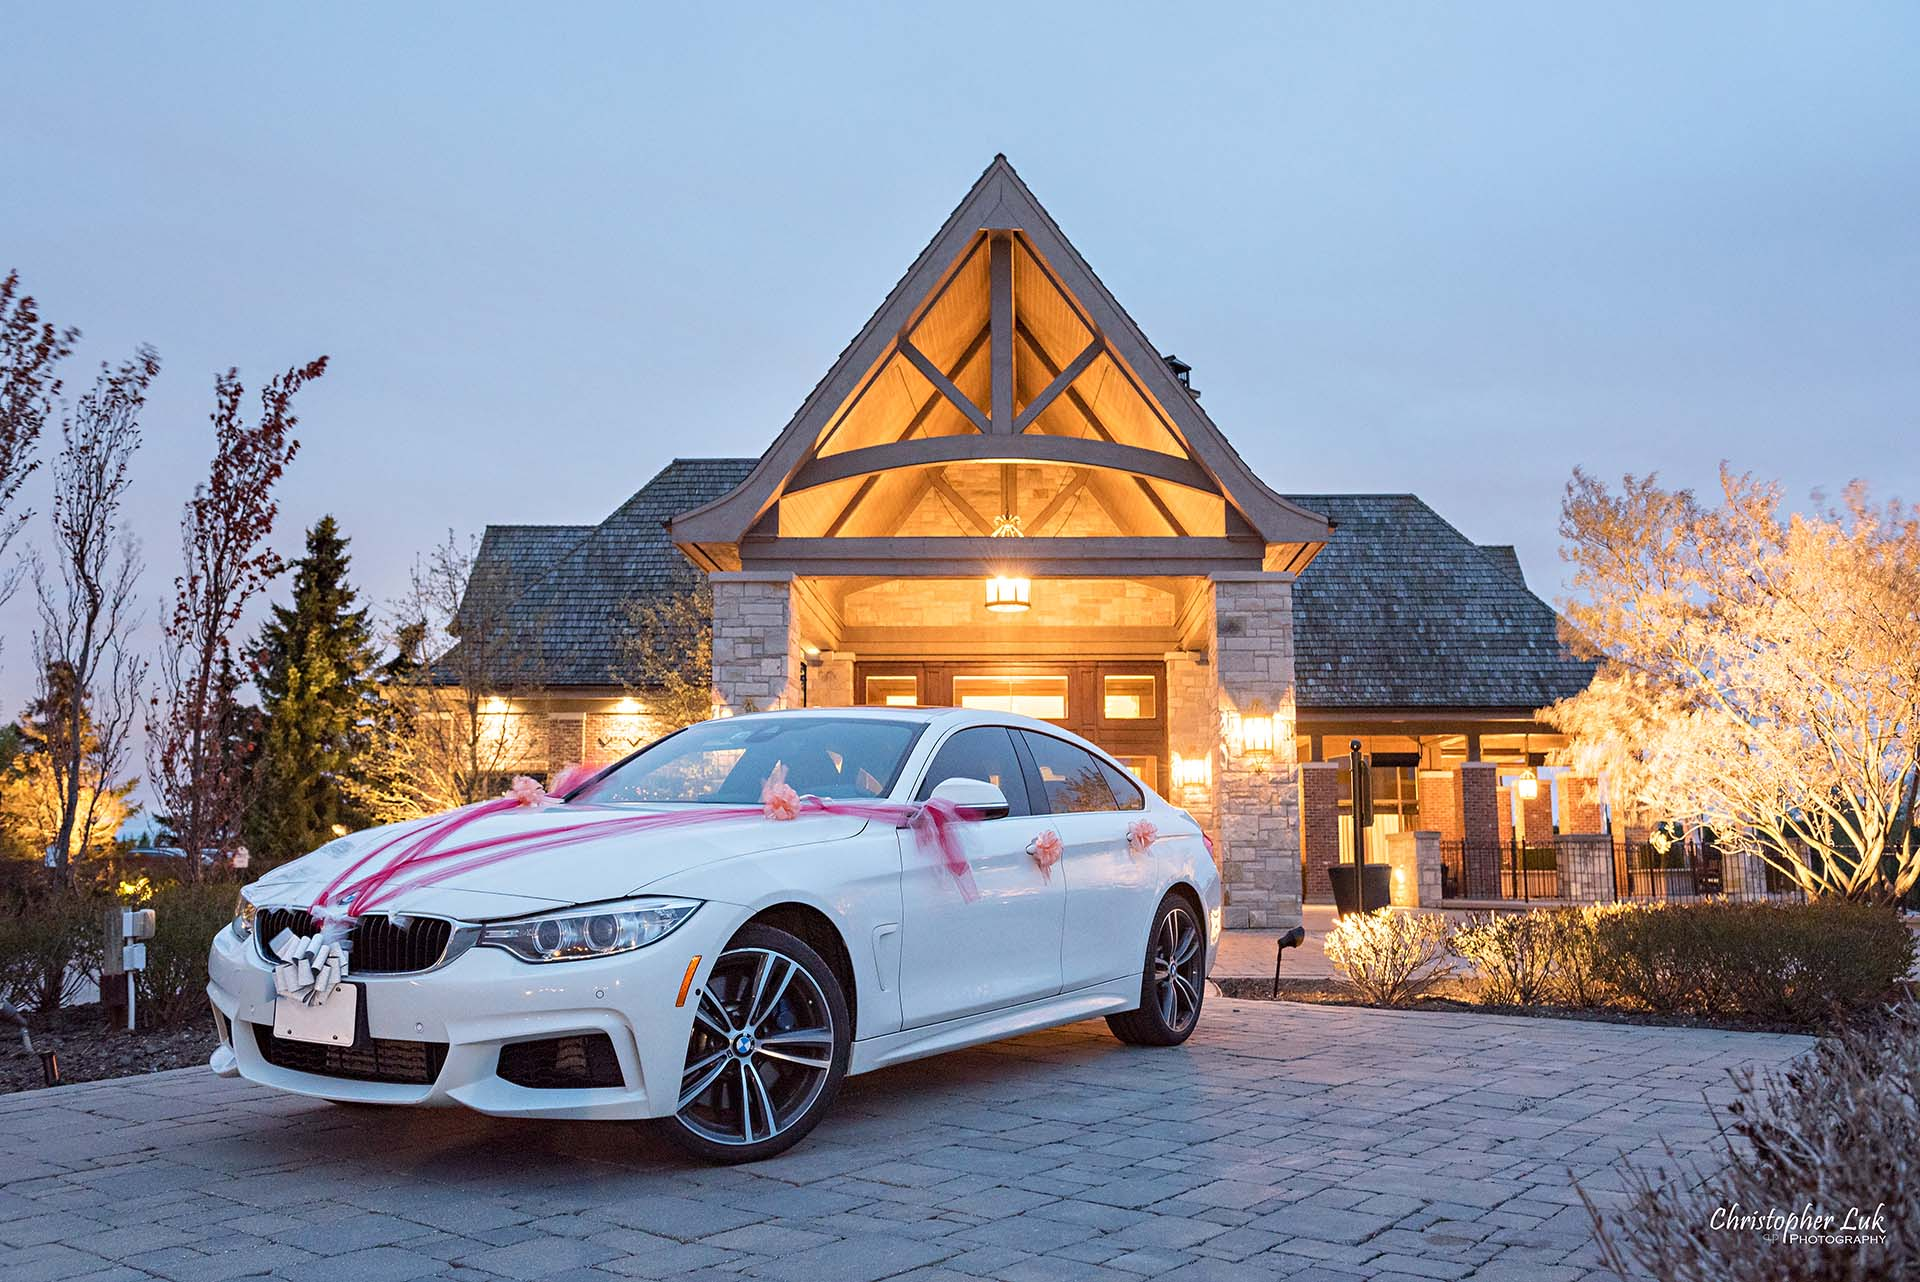 Christopher Luk Toronto Wedding Photographer Eagles Nest Golf Club Course Clubhouse Night Time Nighttime Sunset Long Exposure Driveway Main Entrance Steeple Landscape Decorated Ribbons Car BMW 435i GT Gran Grand Coupe Close